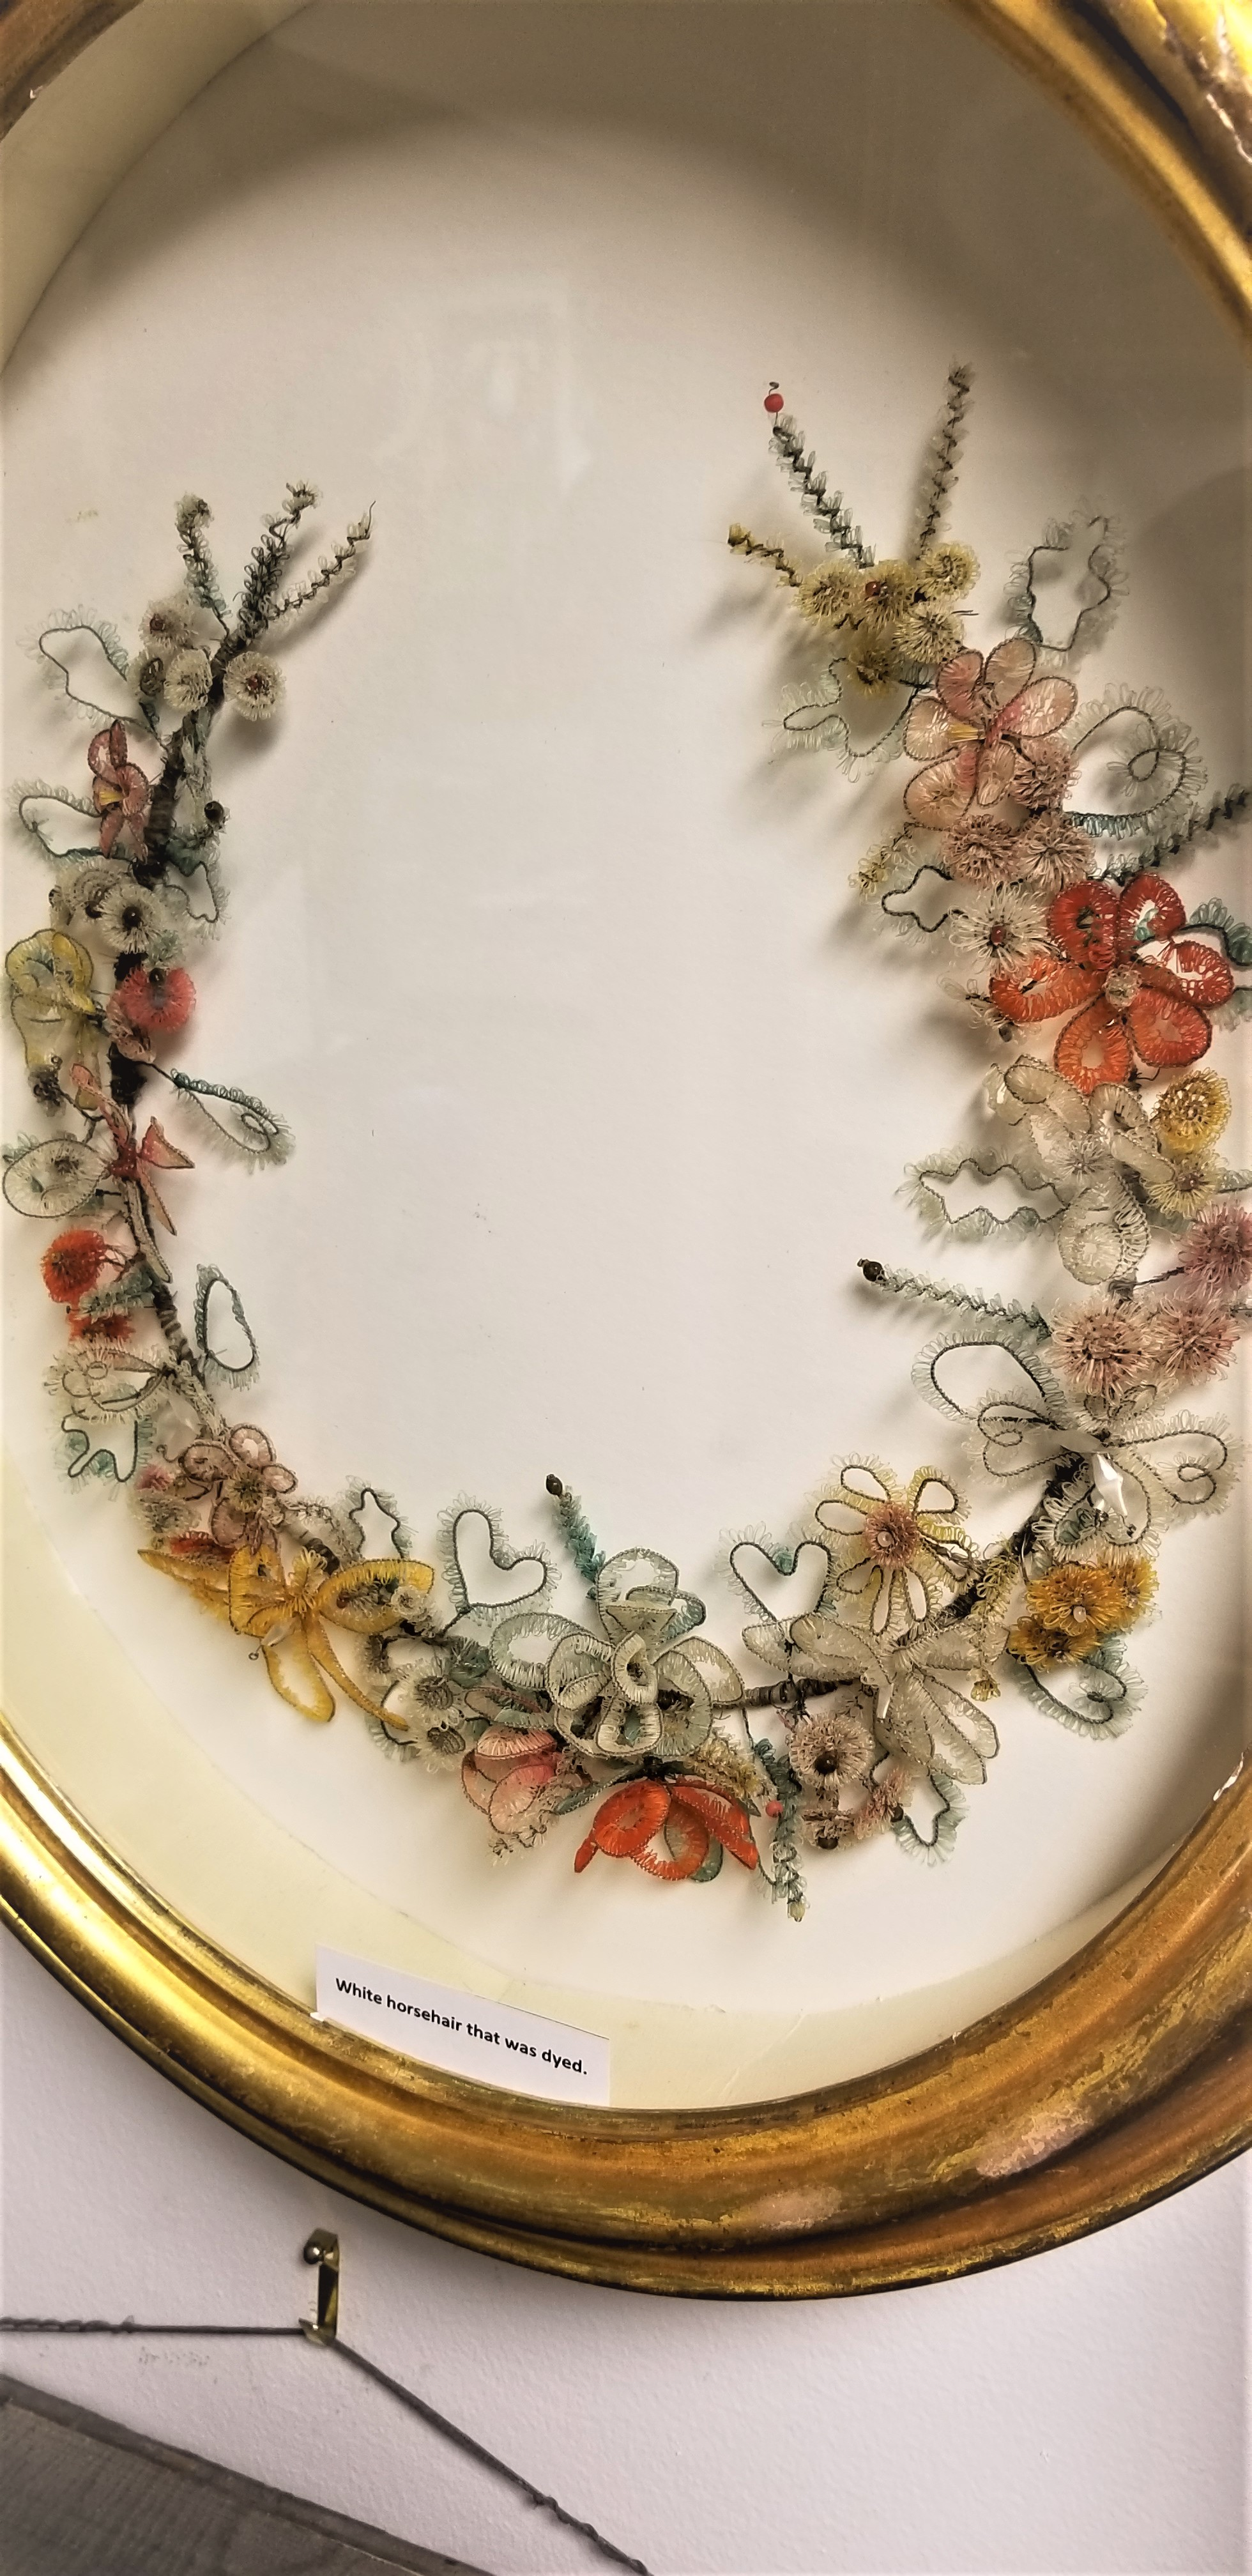 This hair art necklace has a floral themed design.jpg